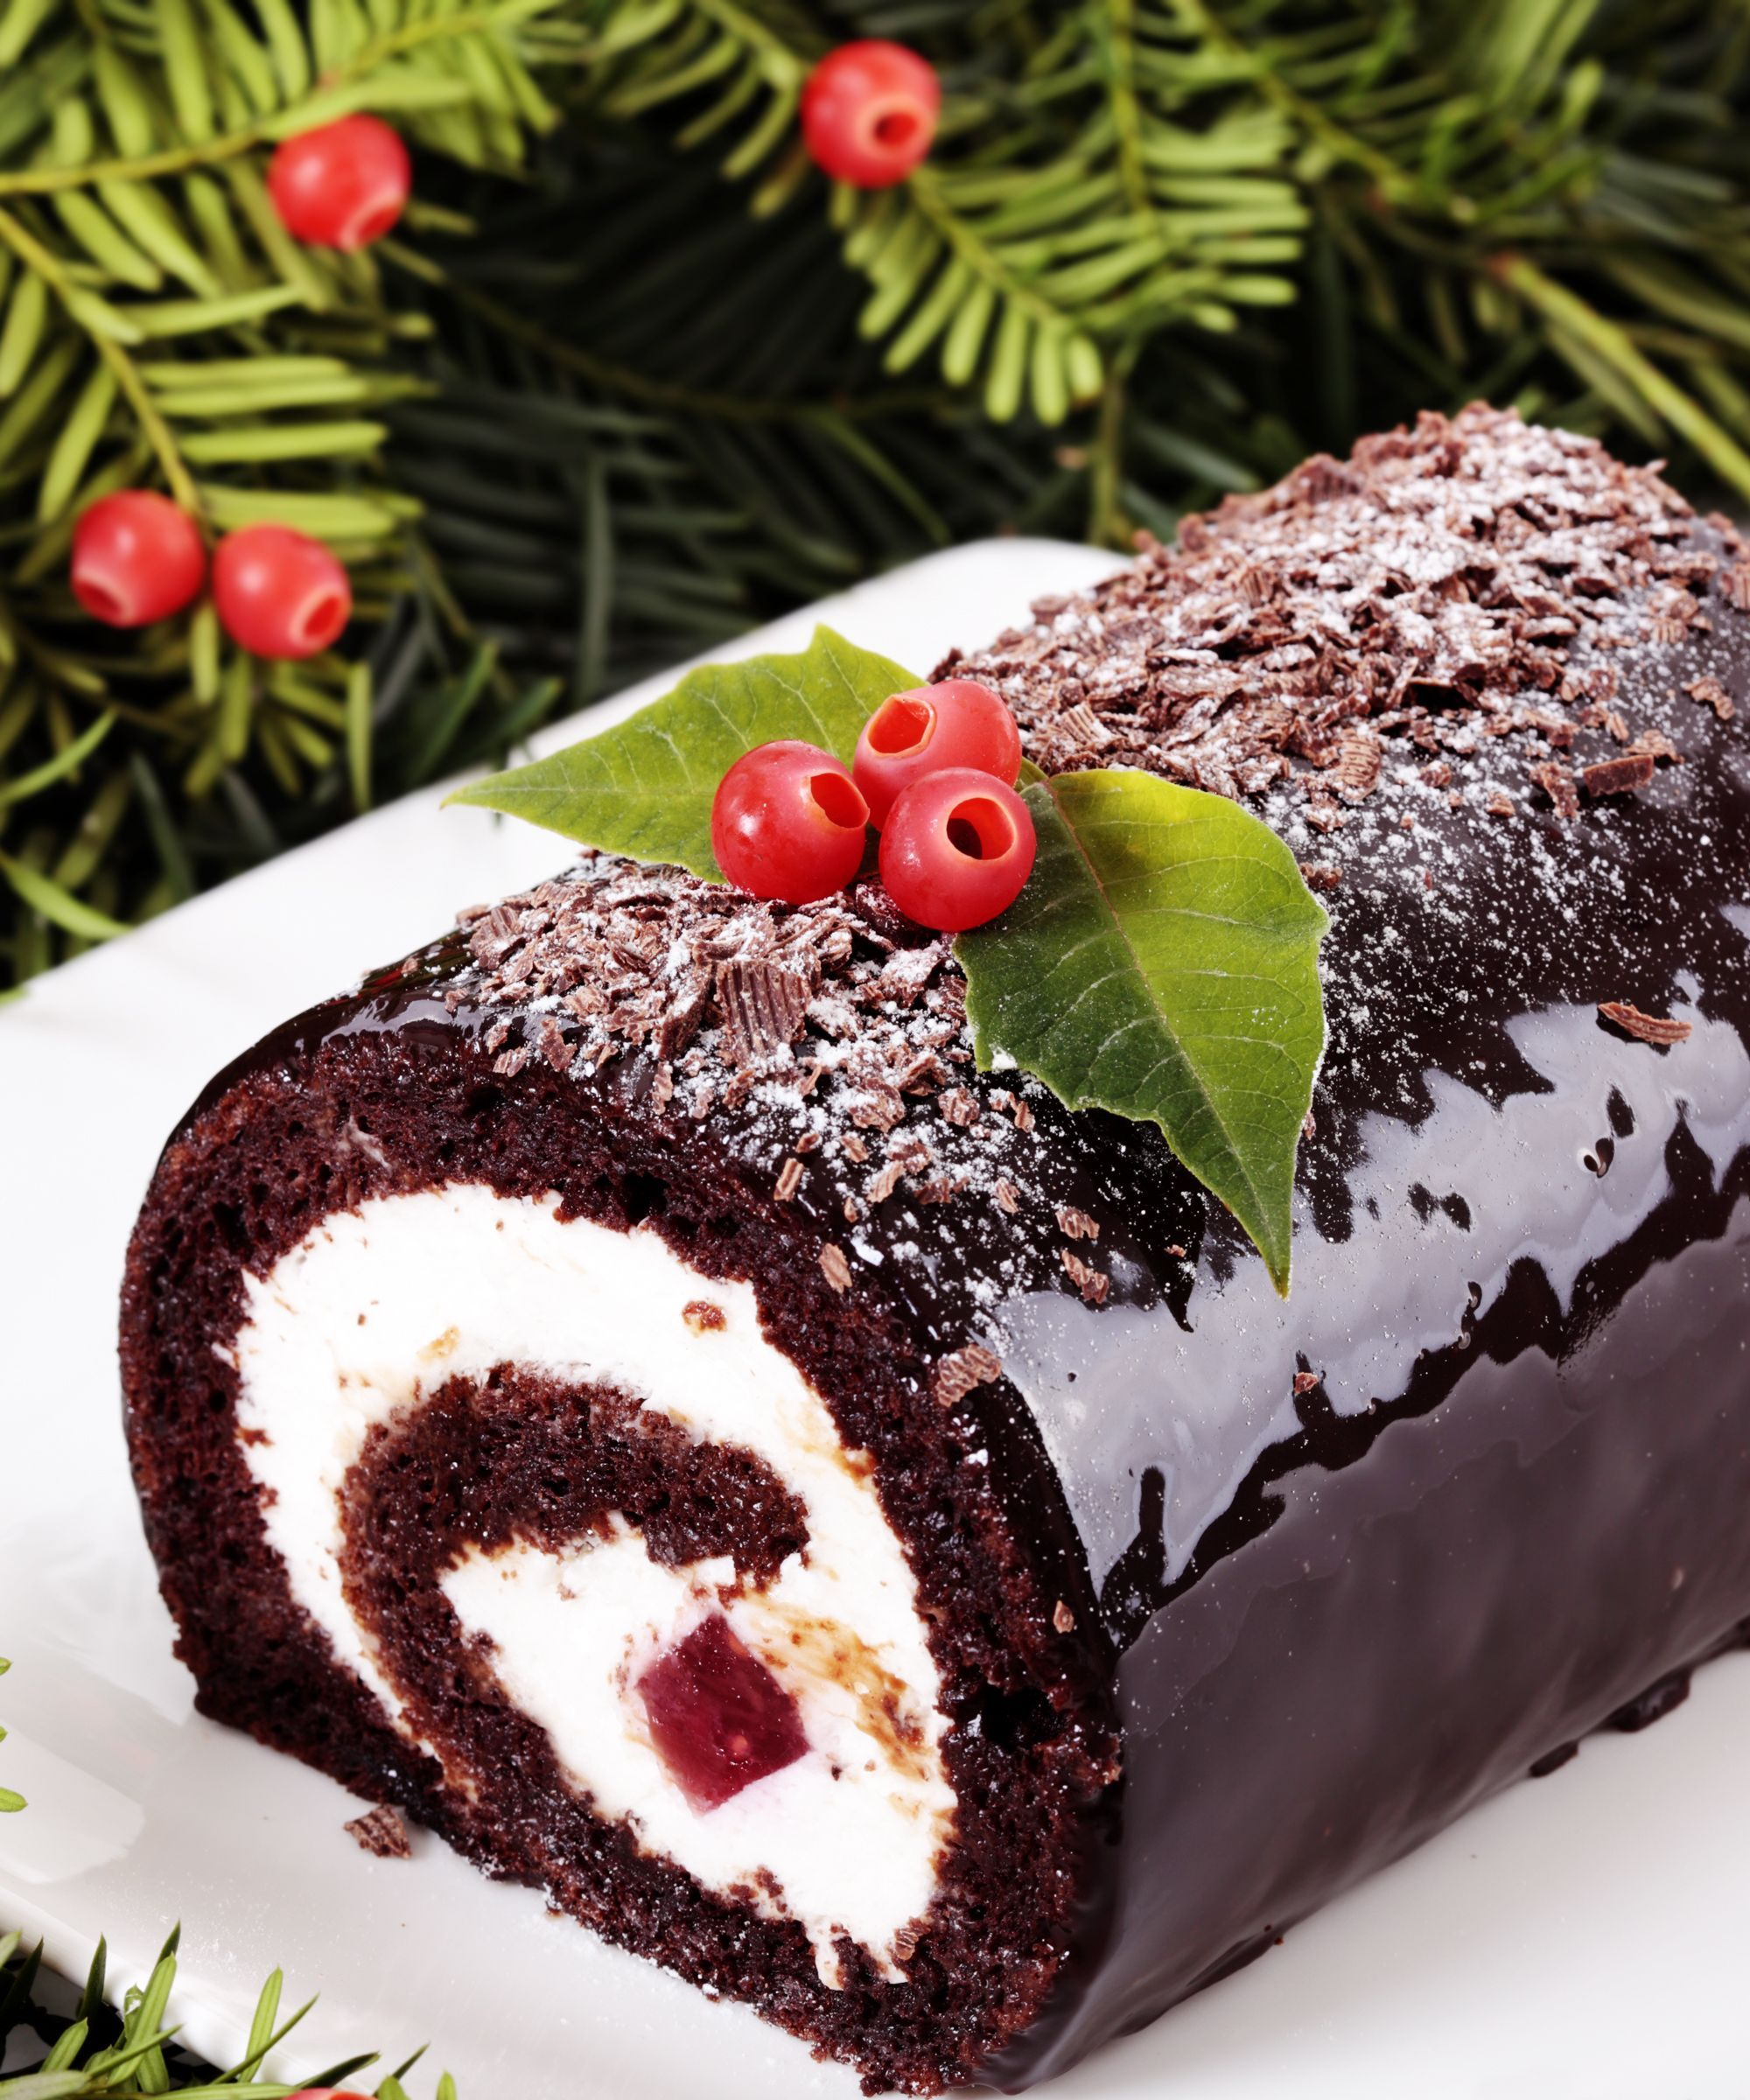 10 Surprising Christmas Traditions That Make Us Hungry